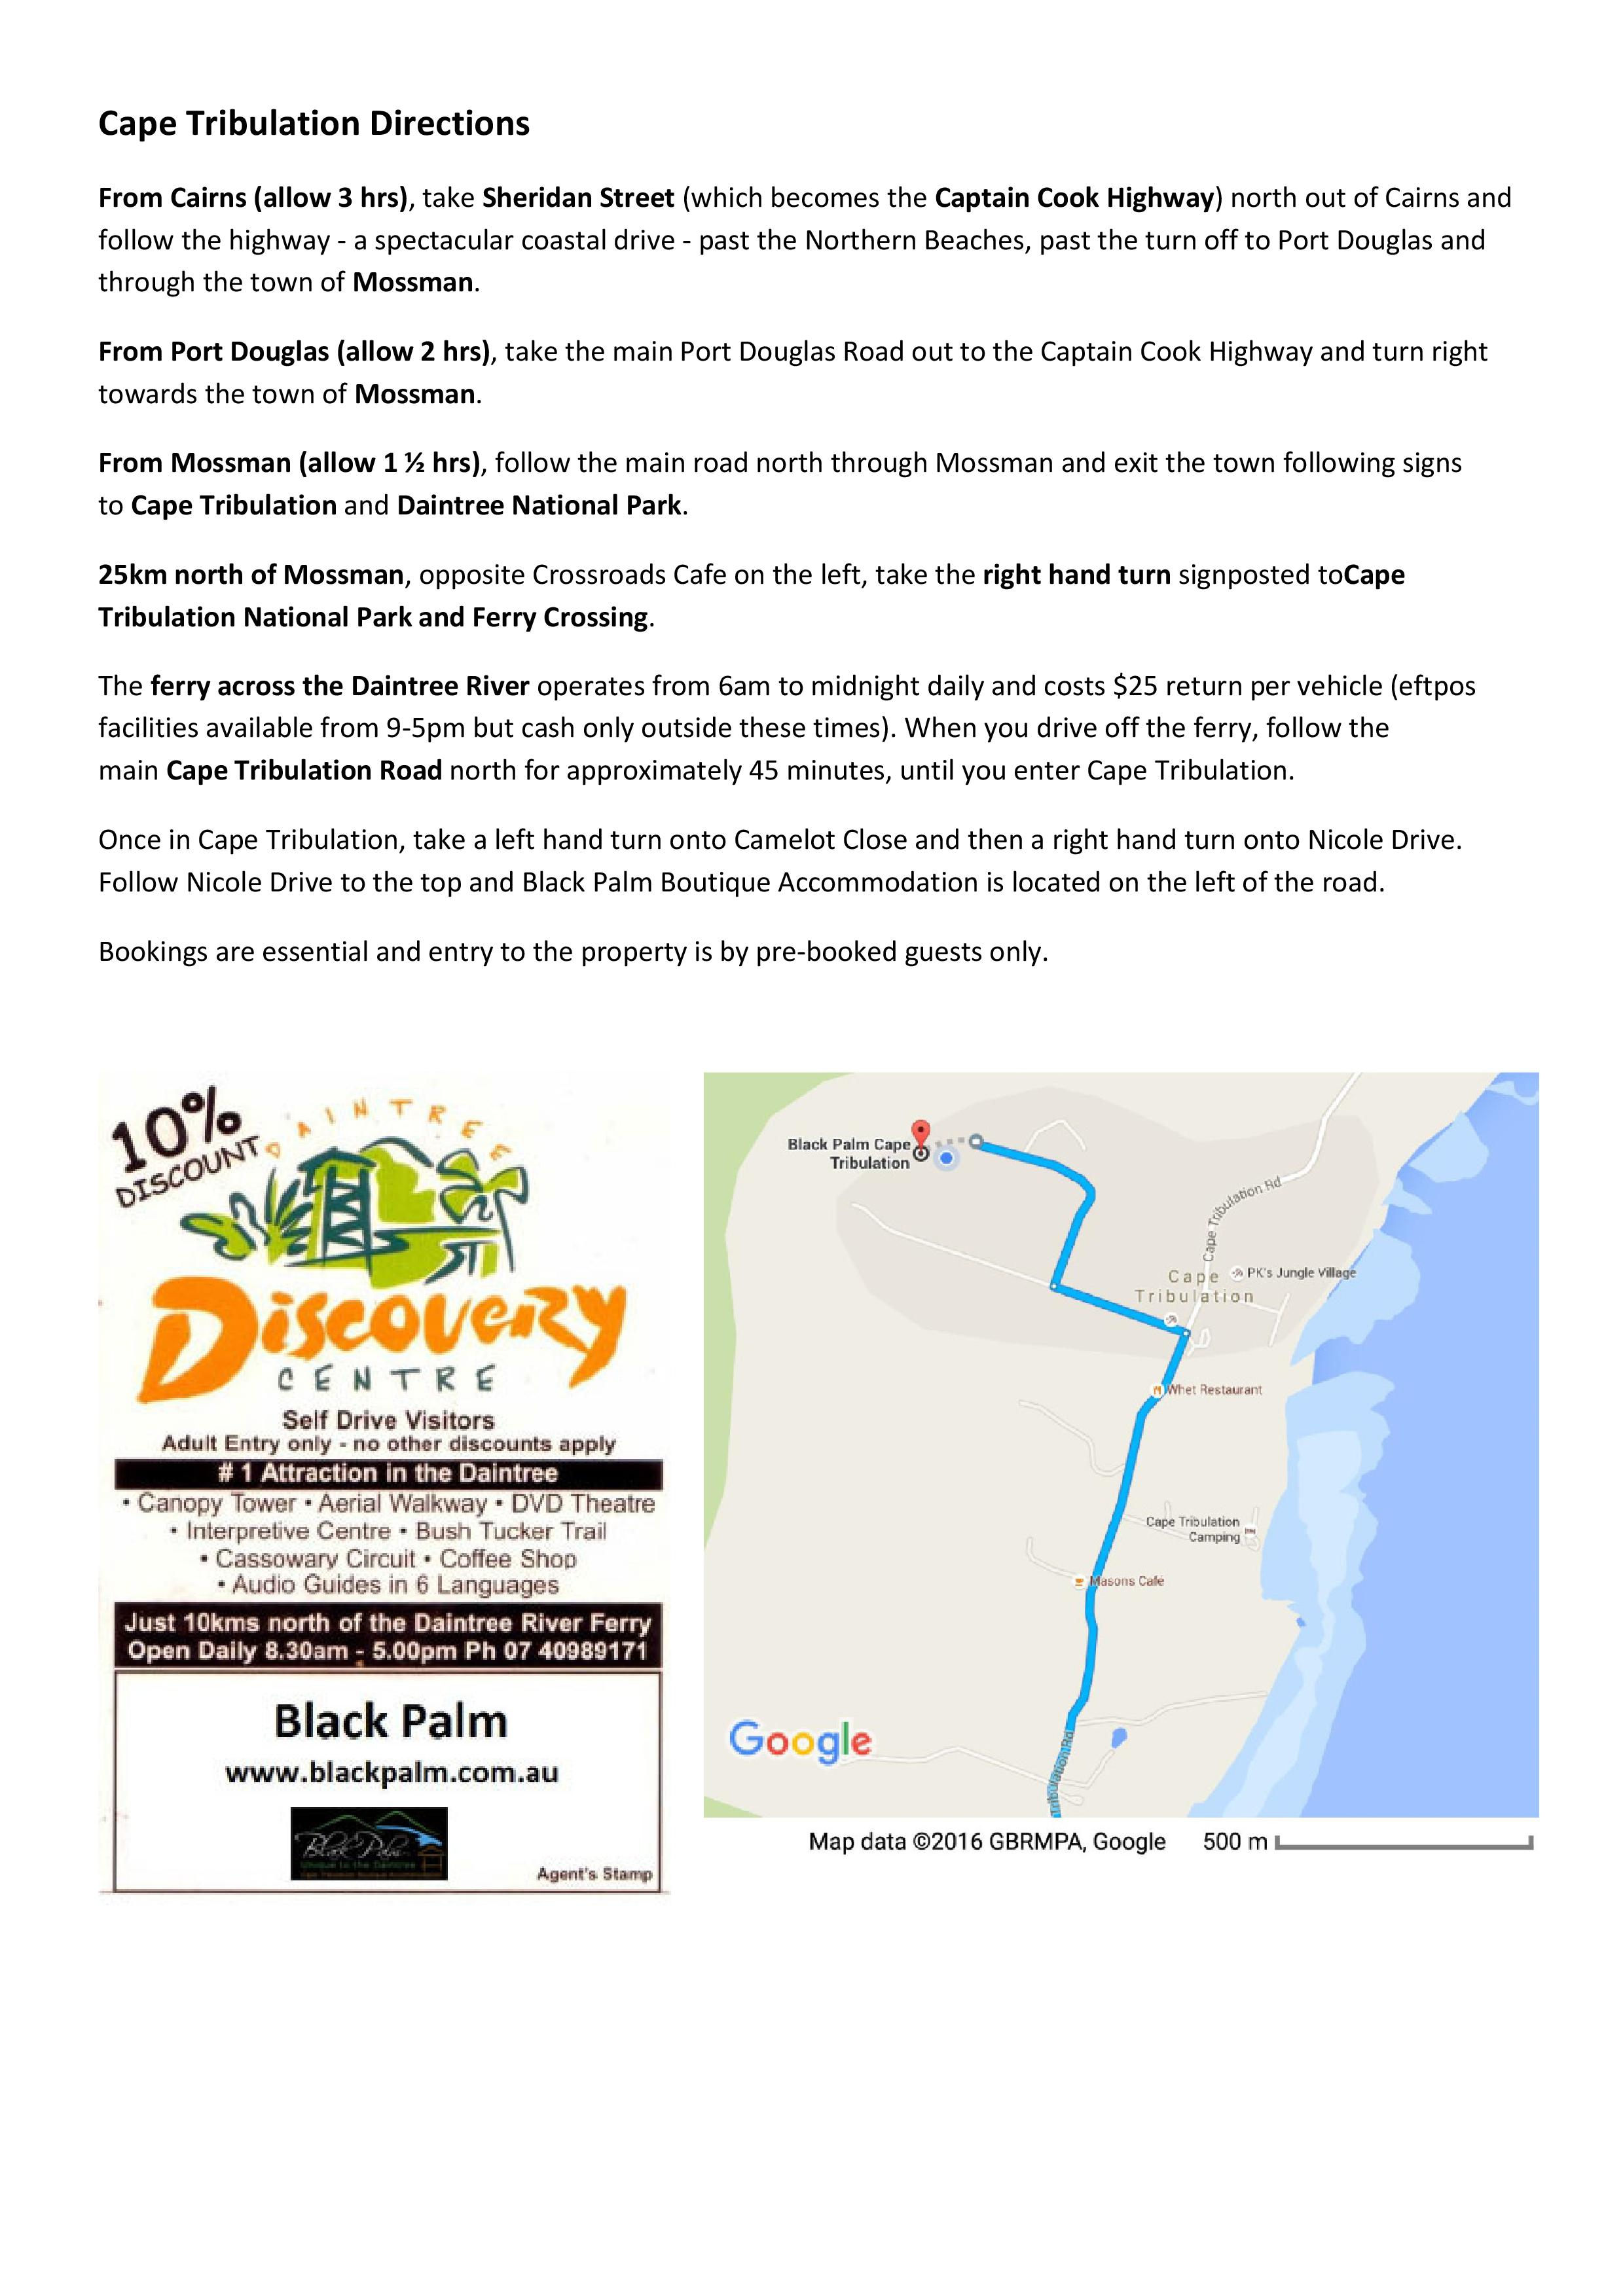 Daintree Discovery Voucher